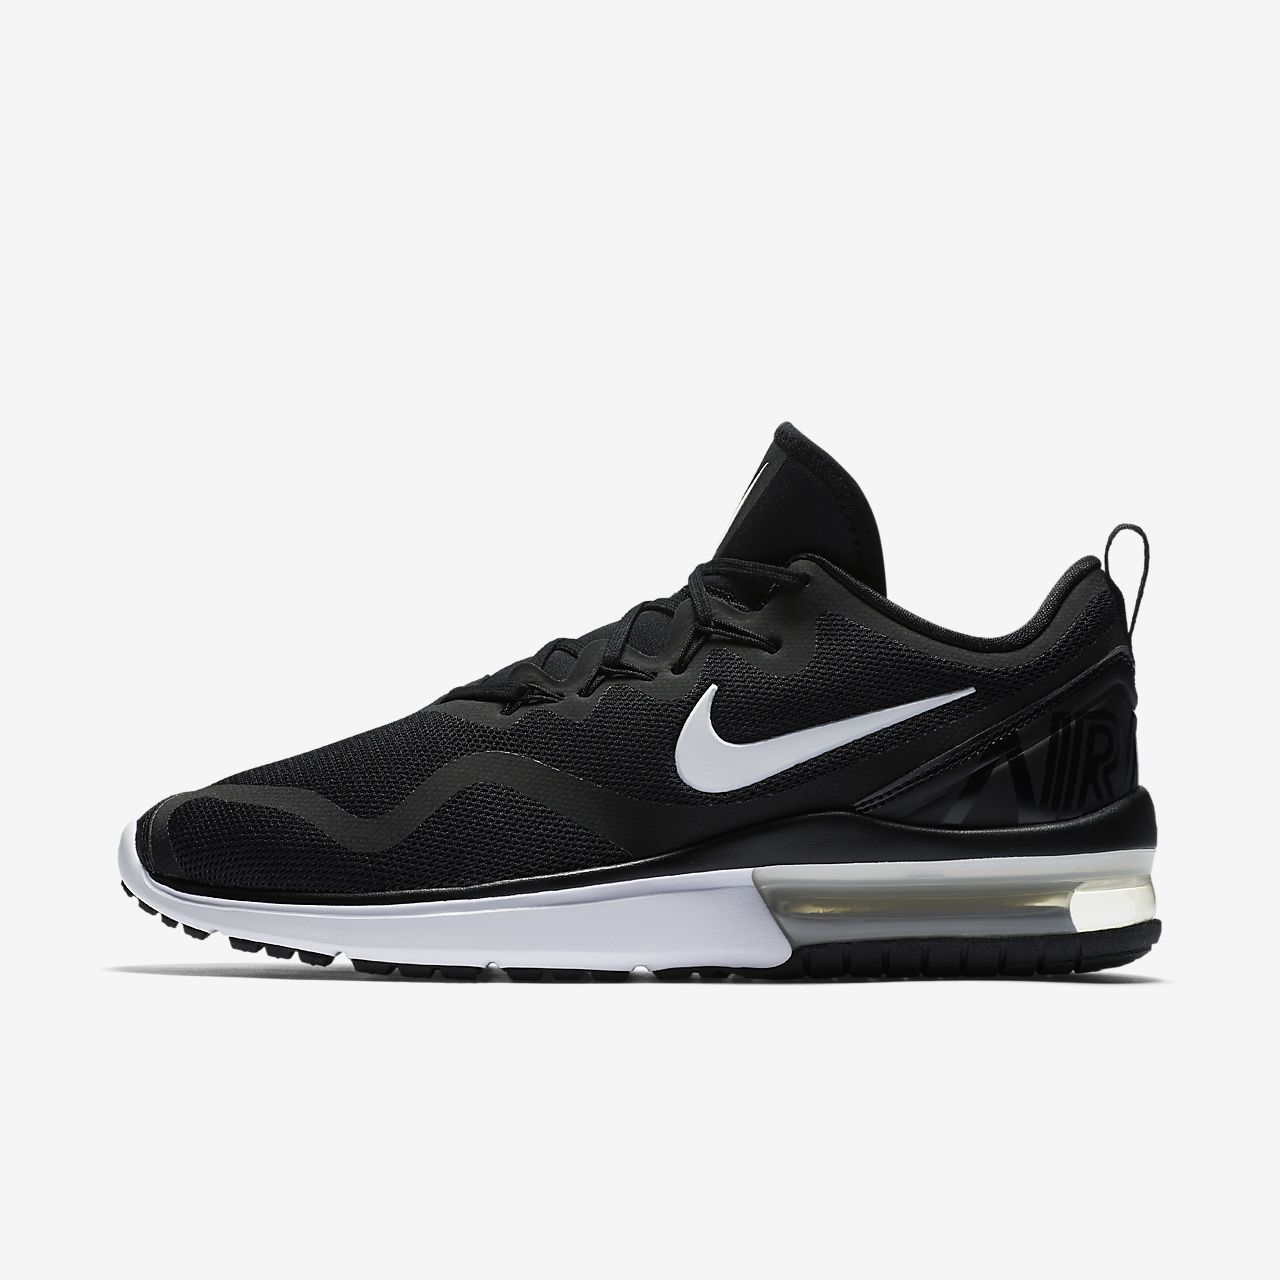 nike air max fury men 39 s running shoe. Black Bedroom Furniture Sets. Home Design Ideas